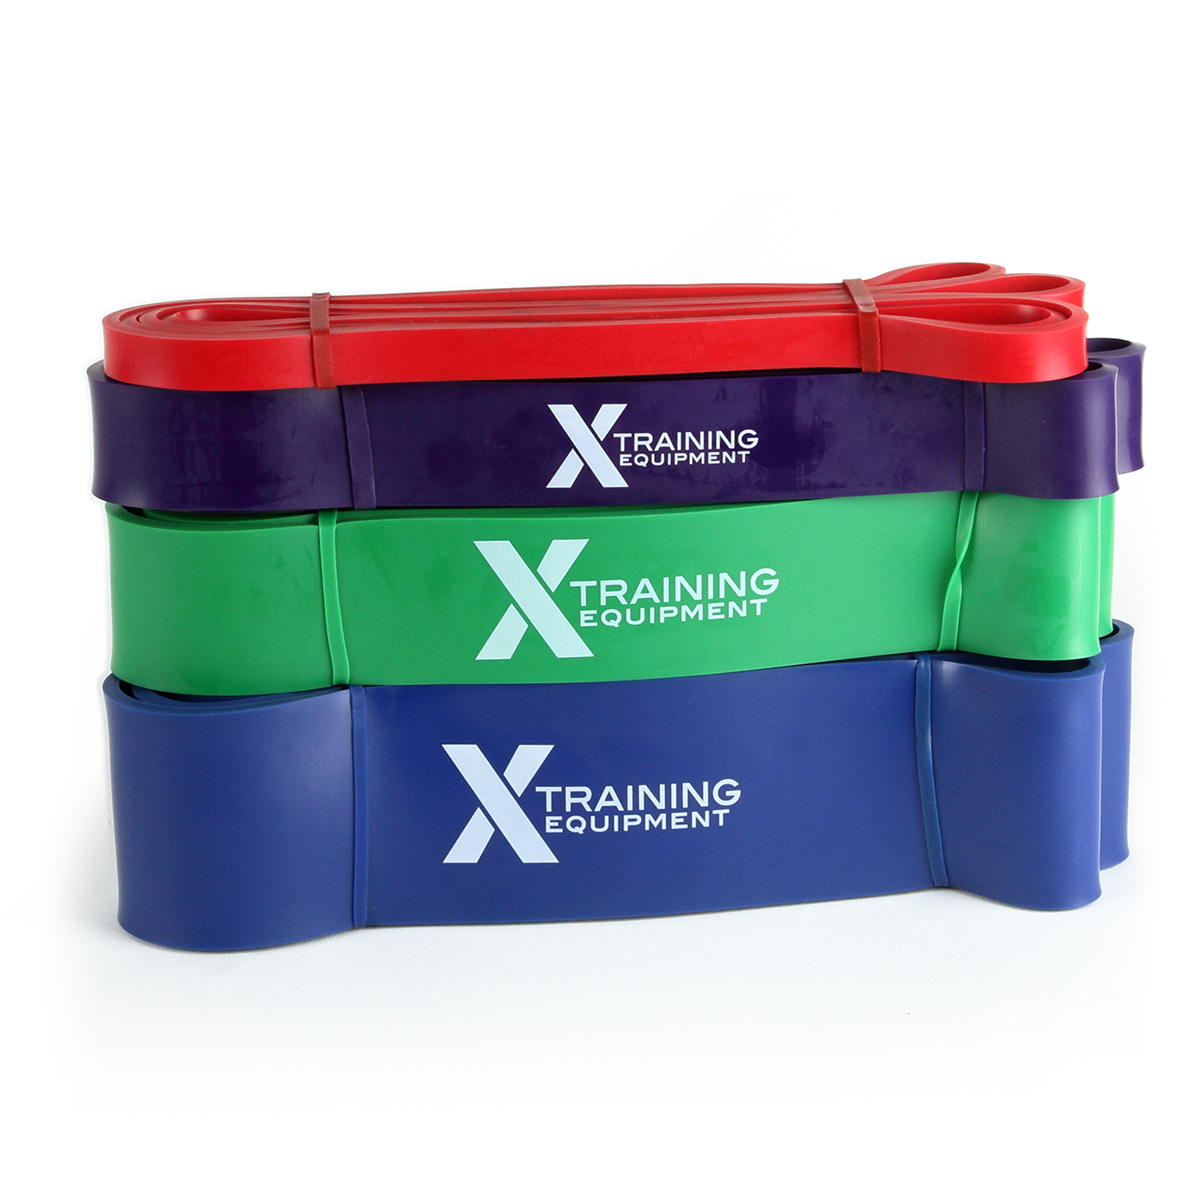 X Training Equipment® Resistance Band 4-Pack - Currently Out of Stock